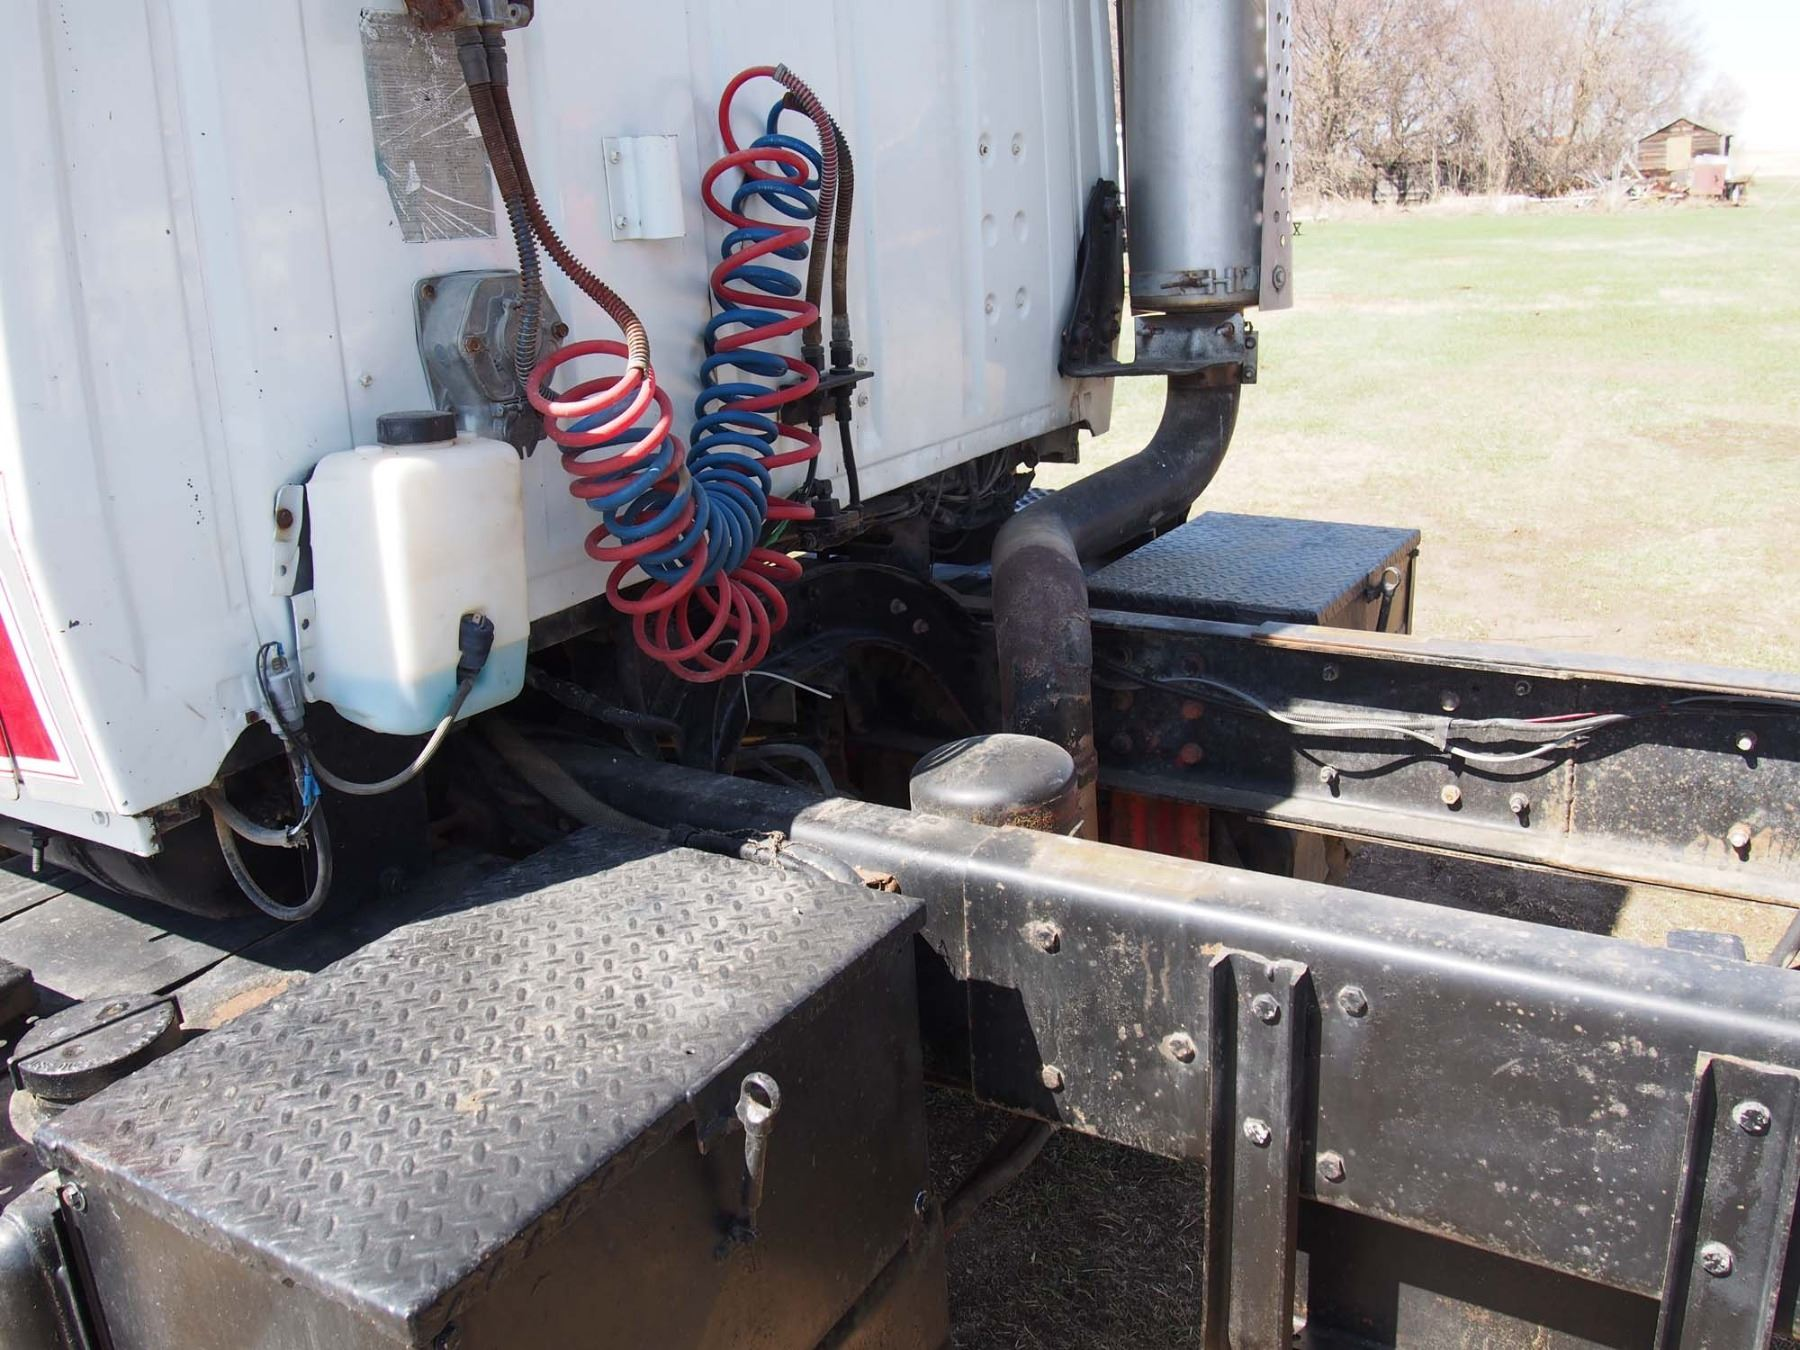 medium resolution of  image 13 1988 ford l9000 tandem truck 855 cummings engine 20 box and